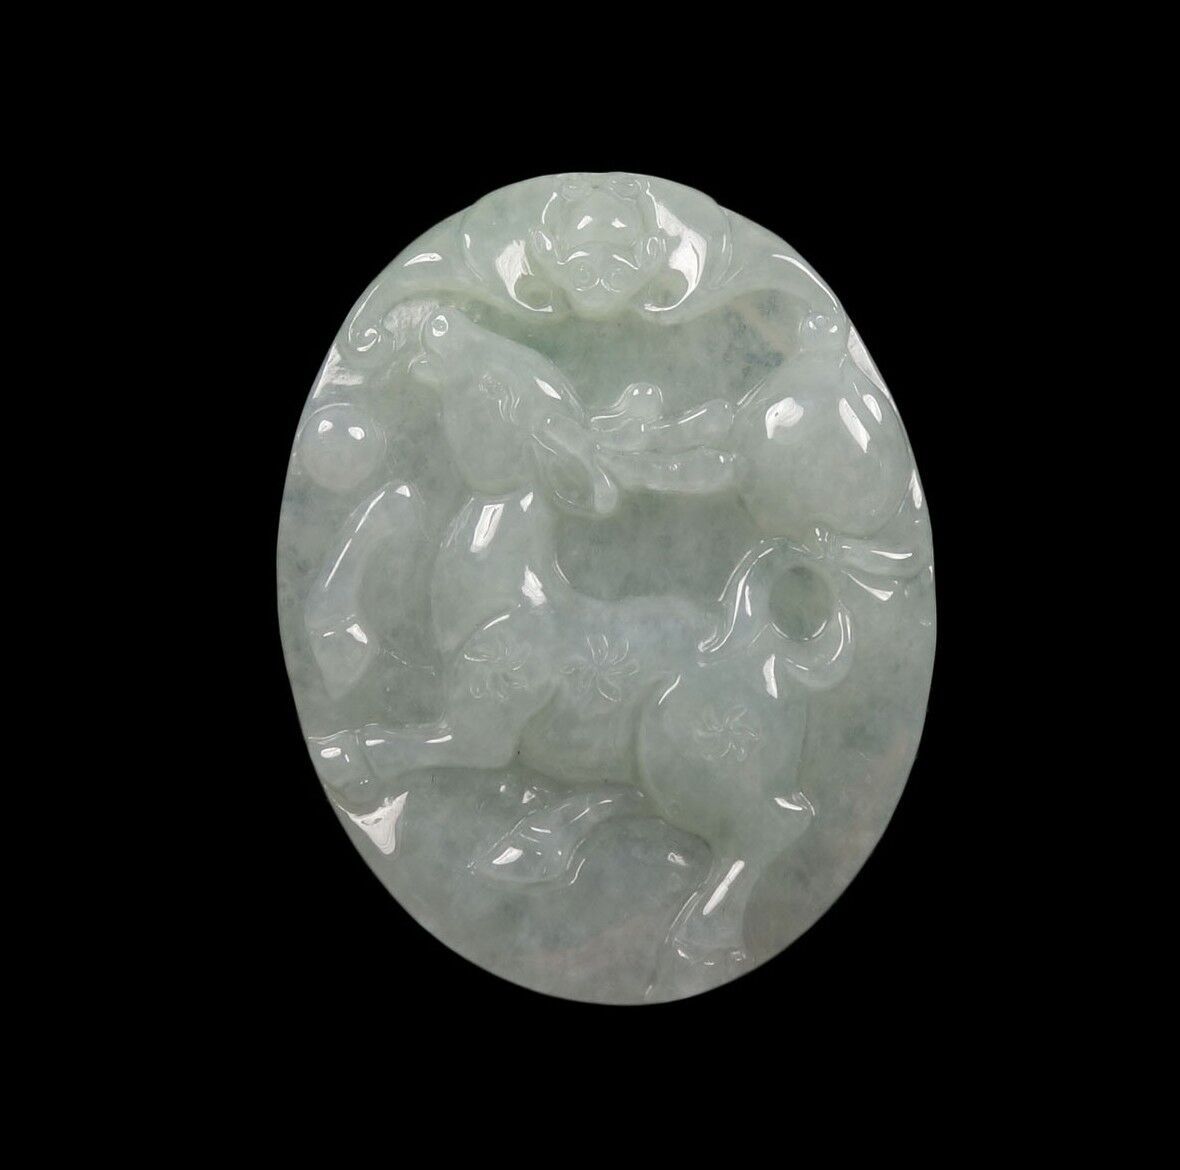 Certified Grade A 100% Natural Green Jade Jadeite Pendant Hand-Carved Deer 54838